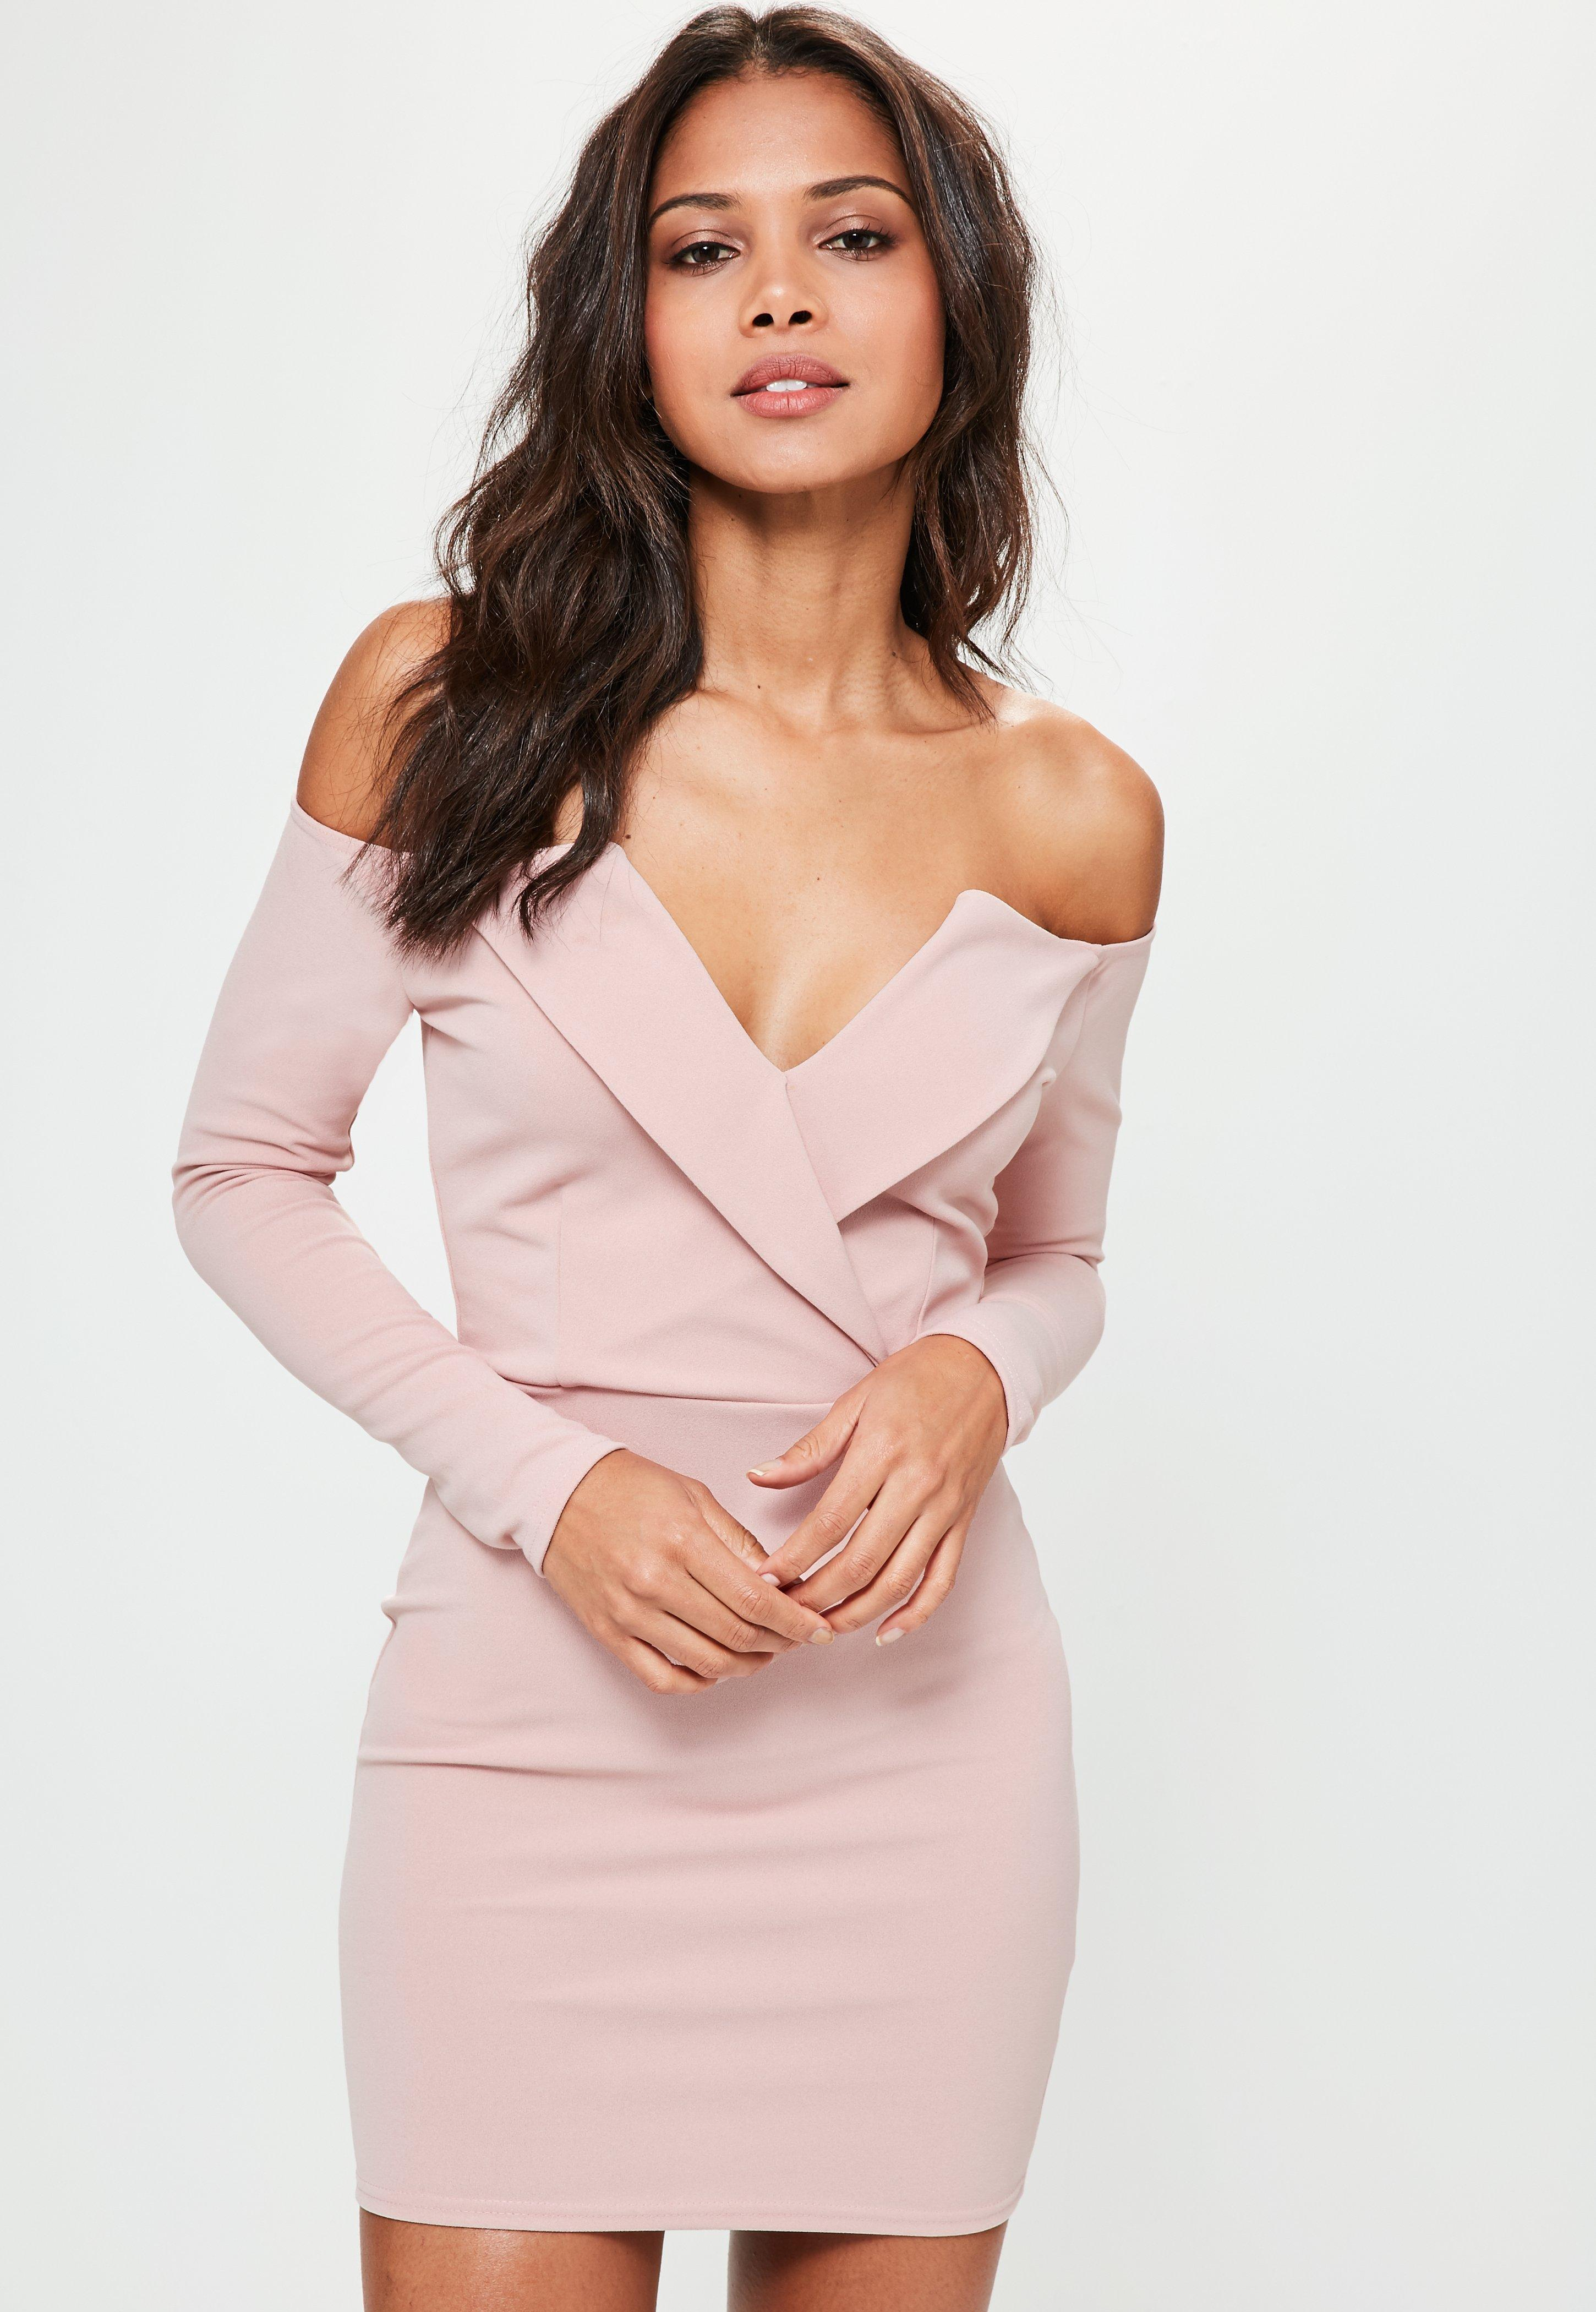 Club Dresses | Club Outfits & Nightclub Dresses - Missguided